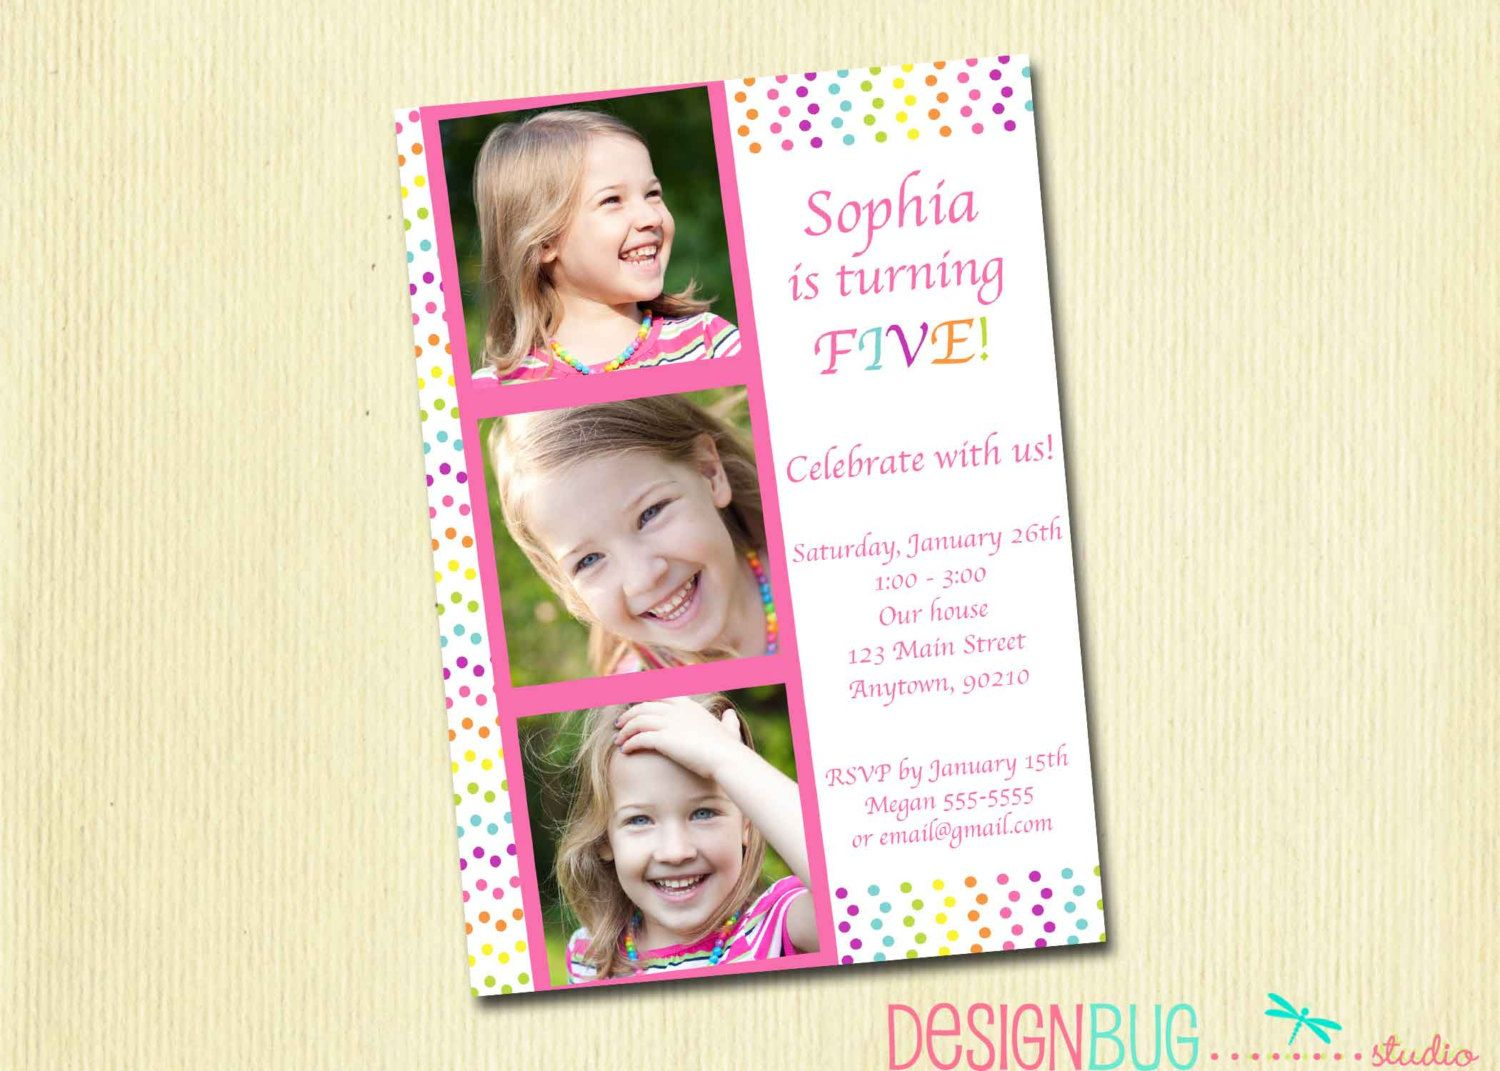 design birthday party invitations free%0A Birthday party ideas